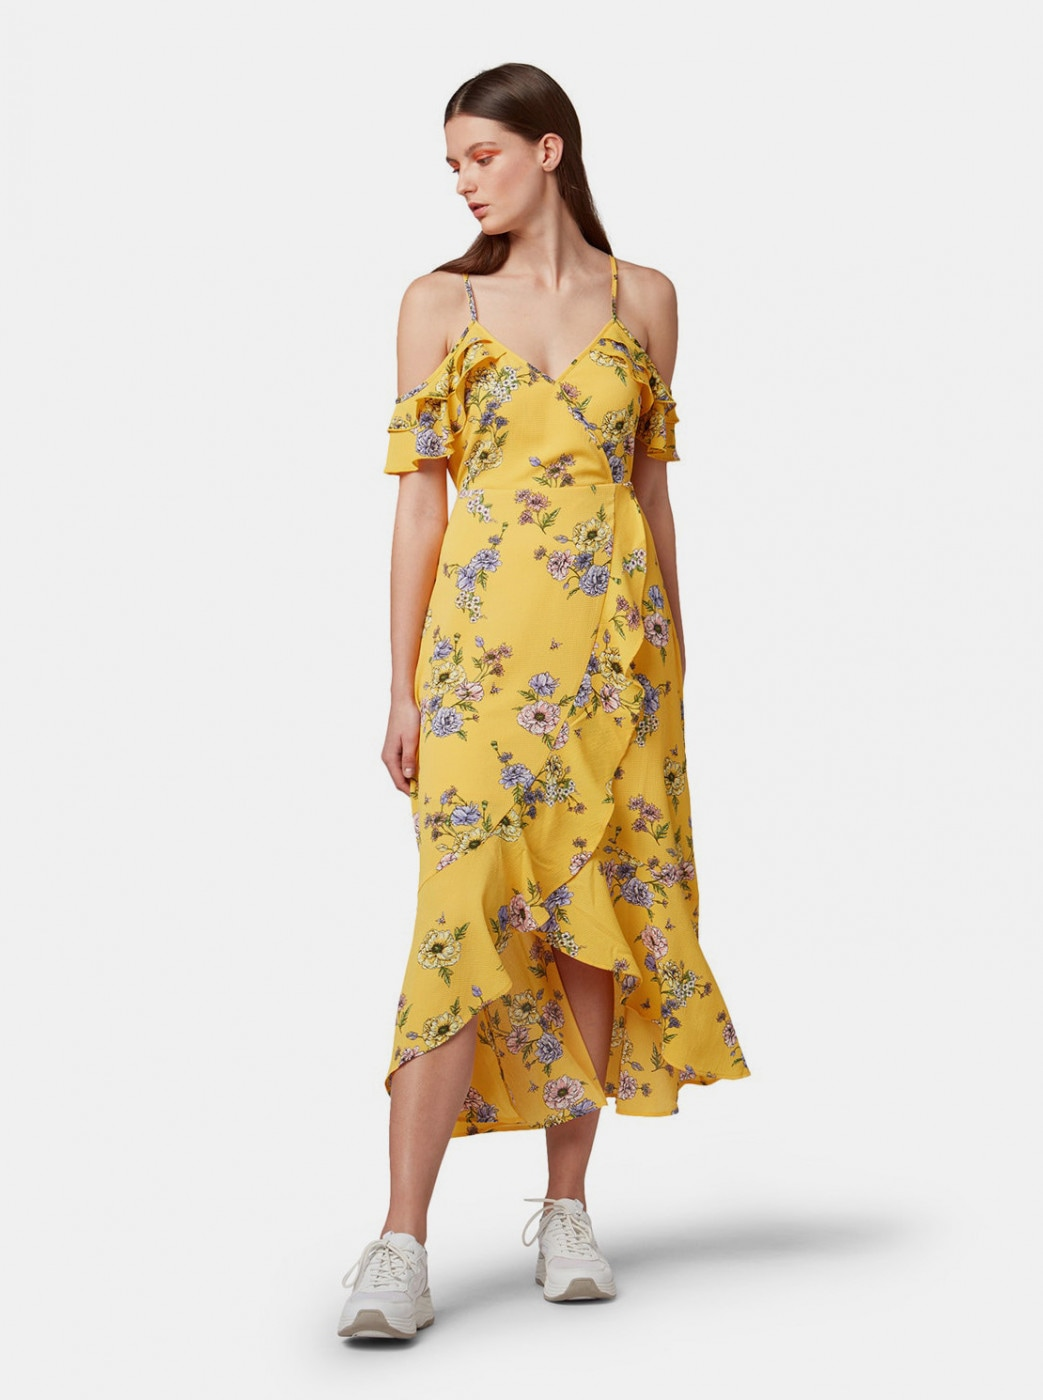 Tom Tailor Denim Yellow Floral Dress